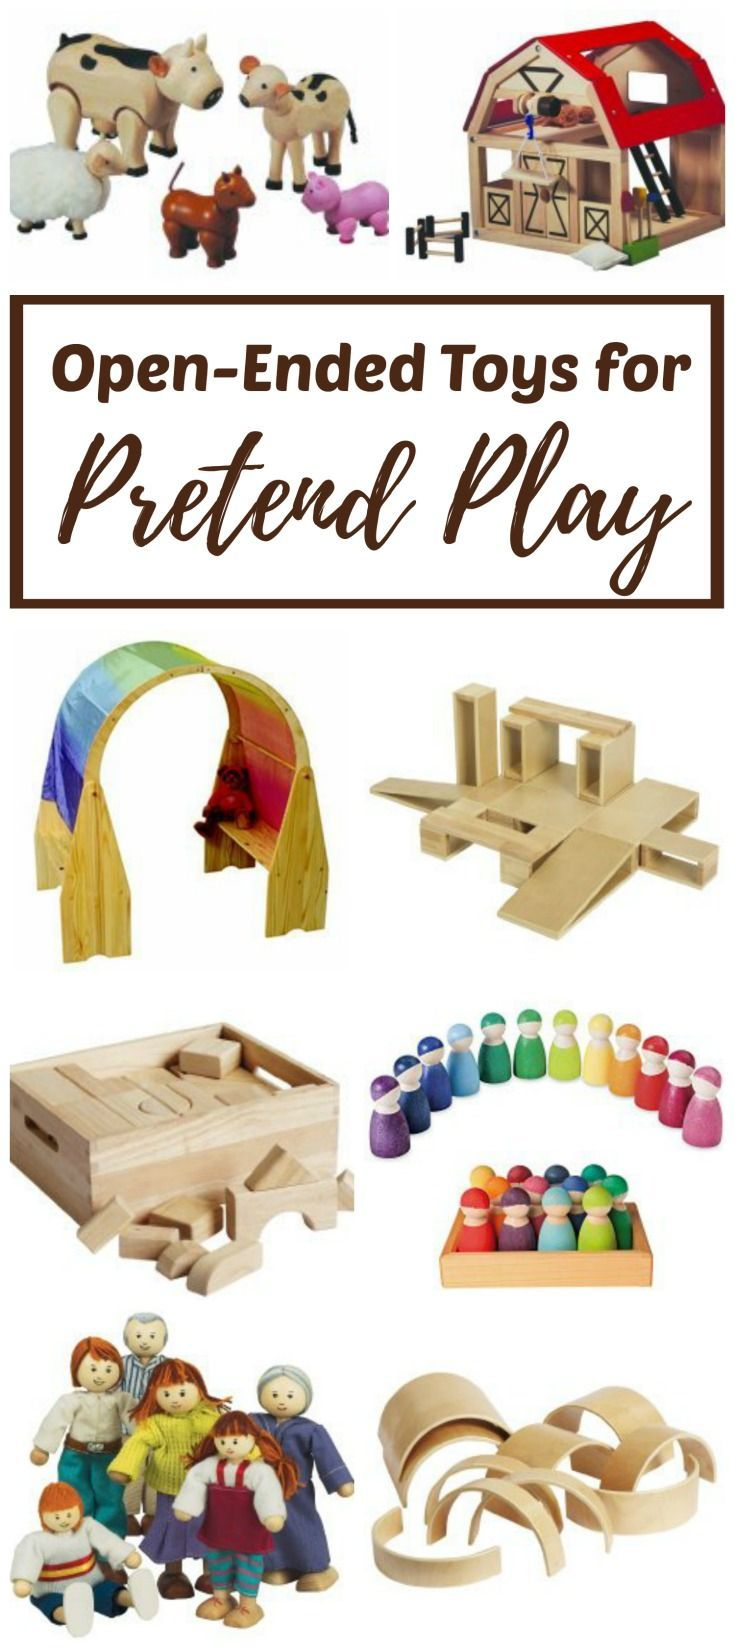 These 15 open-ended toys for imaginative, pretend or dramatic play are great for toddlers, preschoolers and elementary kids. Children begin to understand the world around them through movement and play. They need materials that meet their needs with each new imagining.